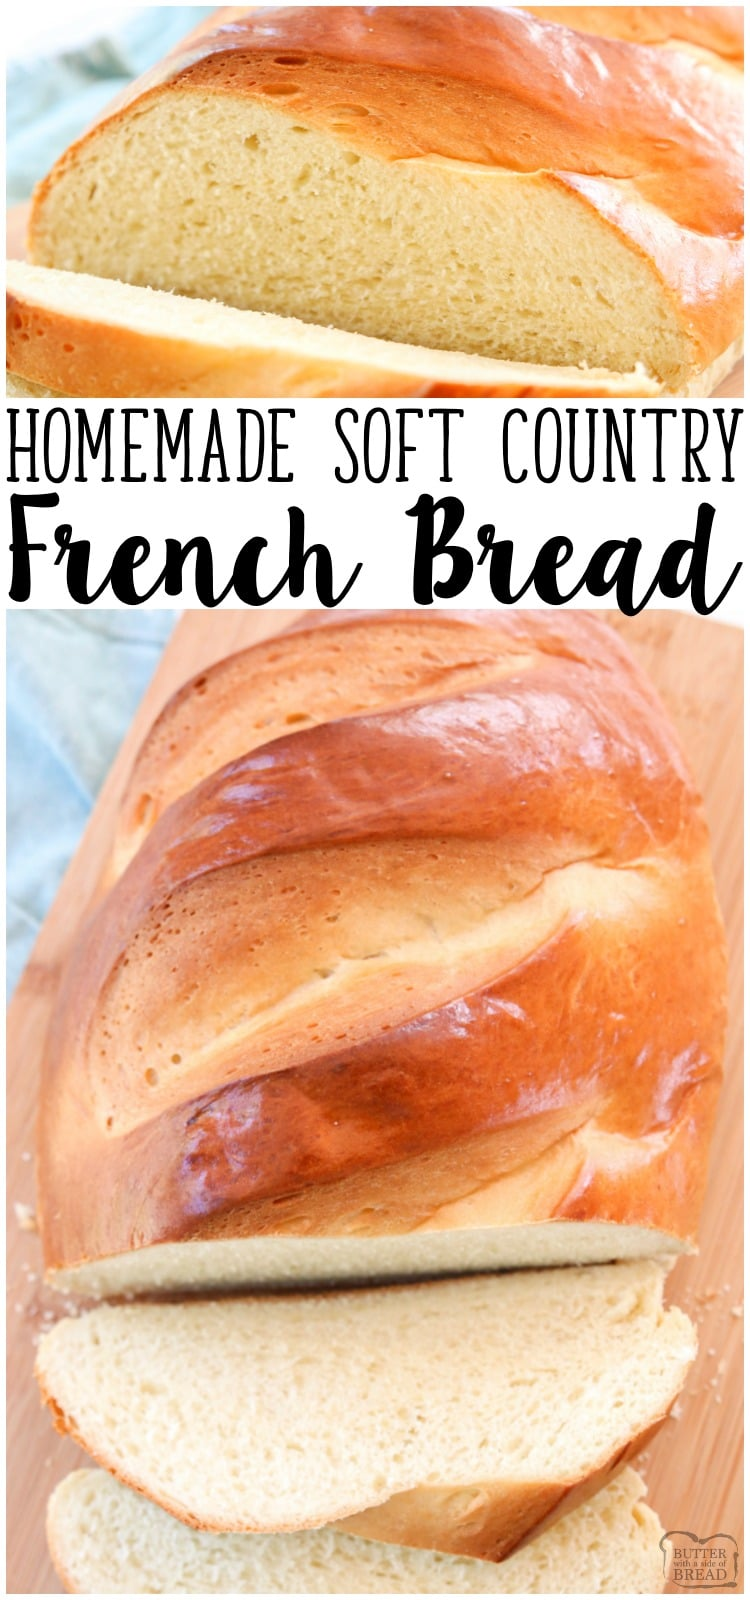 Country French Bread recipemade with simple ingredients & detailed instructions showinghow to make bread! Done in just over an hour and is a showstopper!